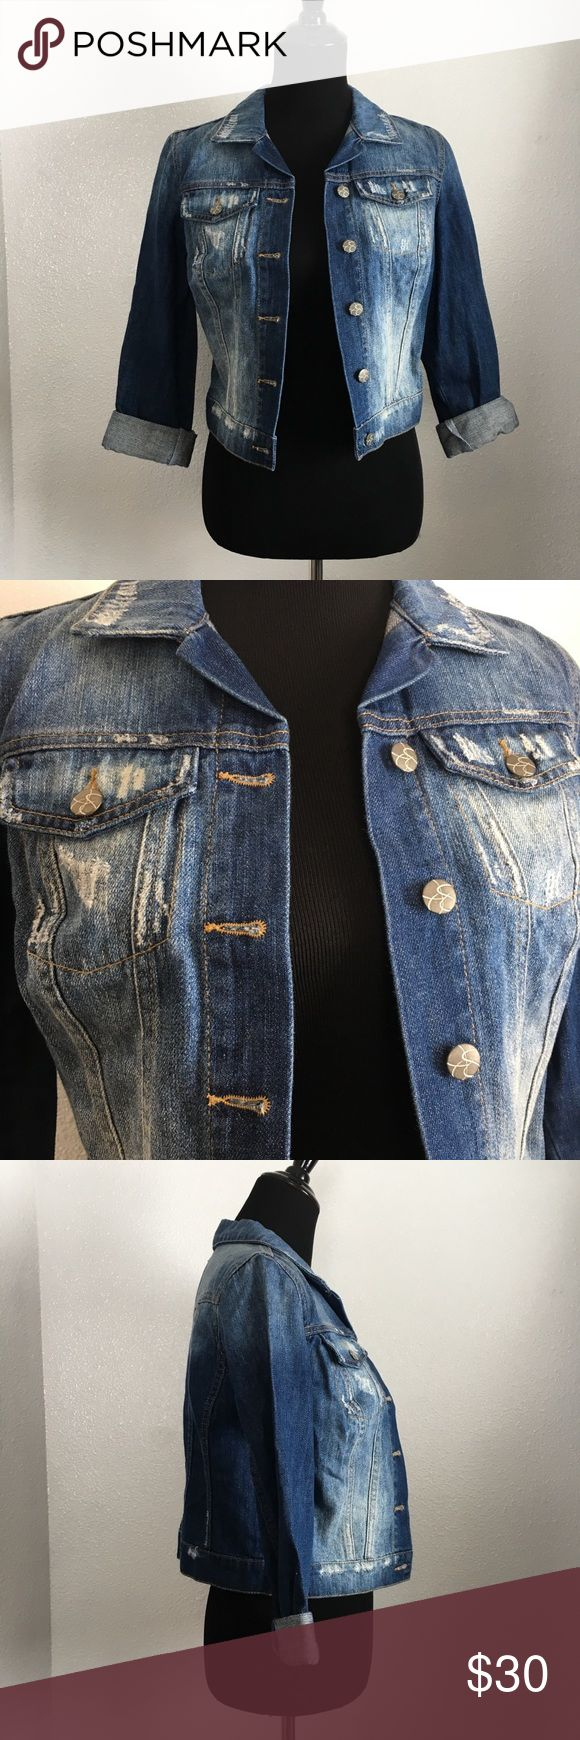 Jessica Simpson denim jacket Jessica Simpson cropped distressed denim jacket. Jessica Simpson Jackets & Coats Jean Jackets